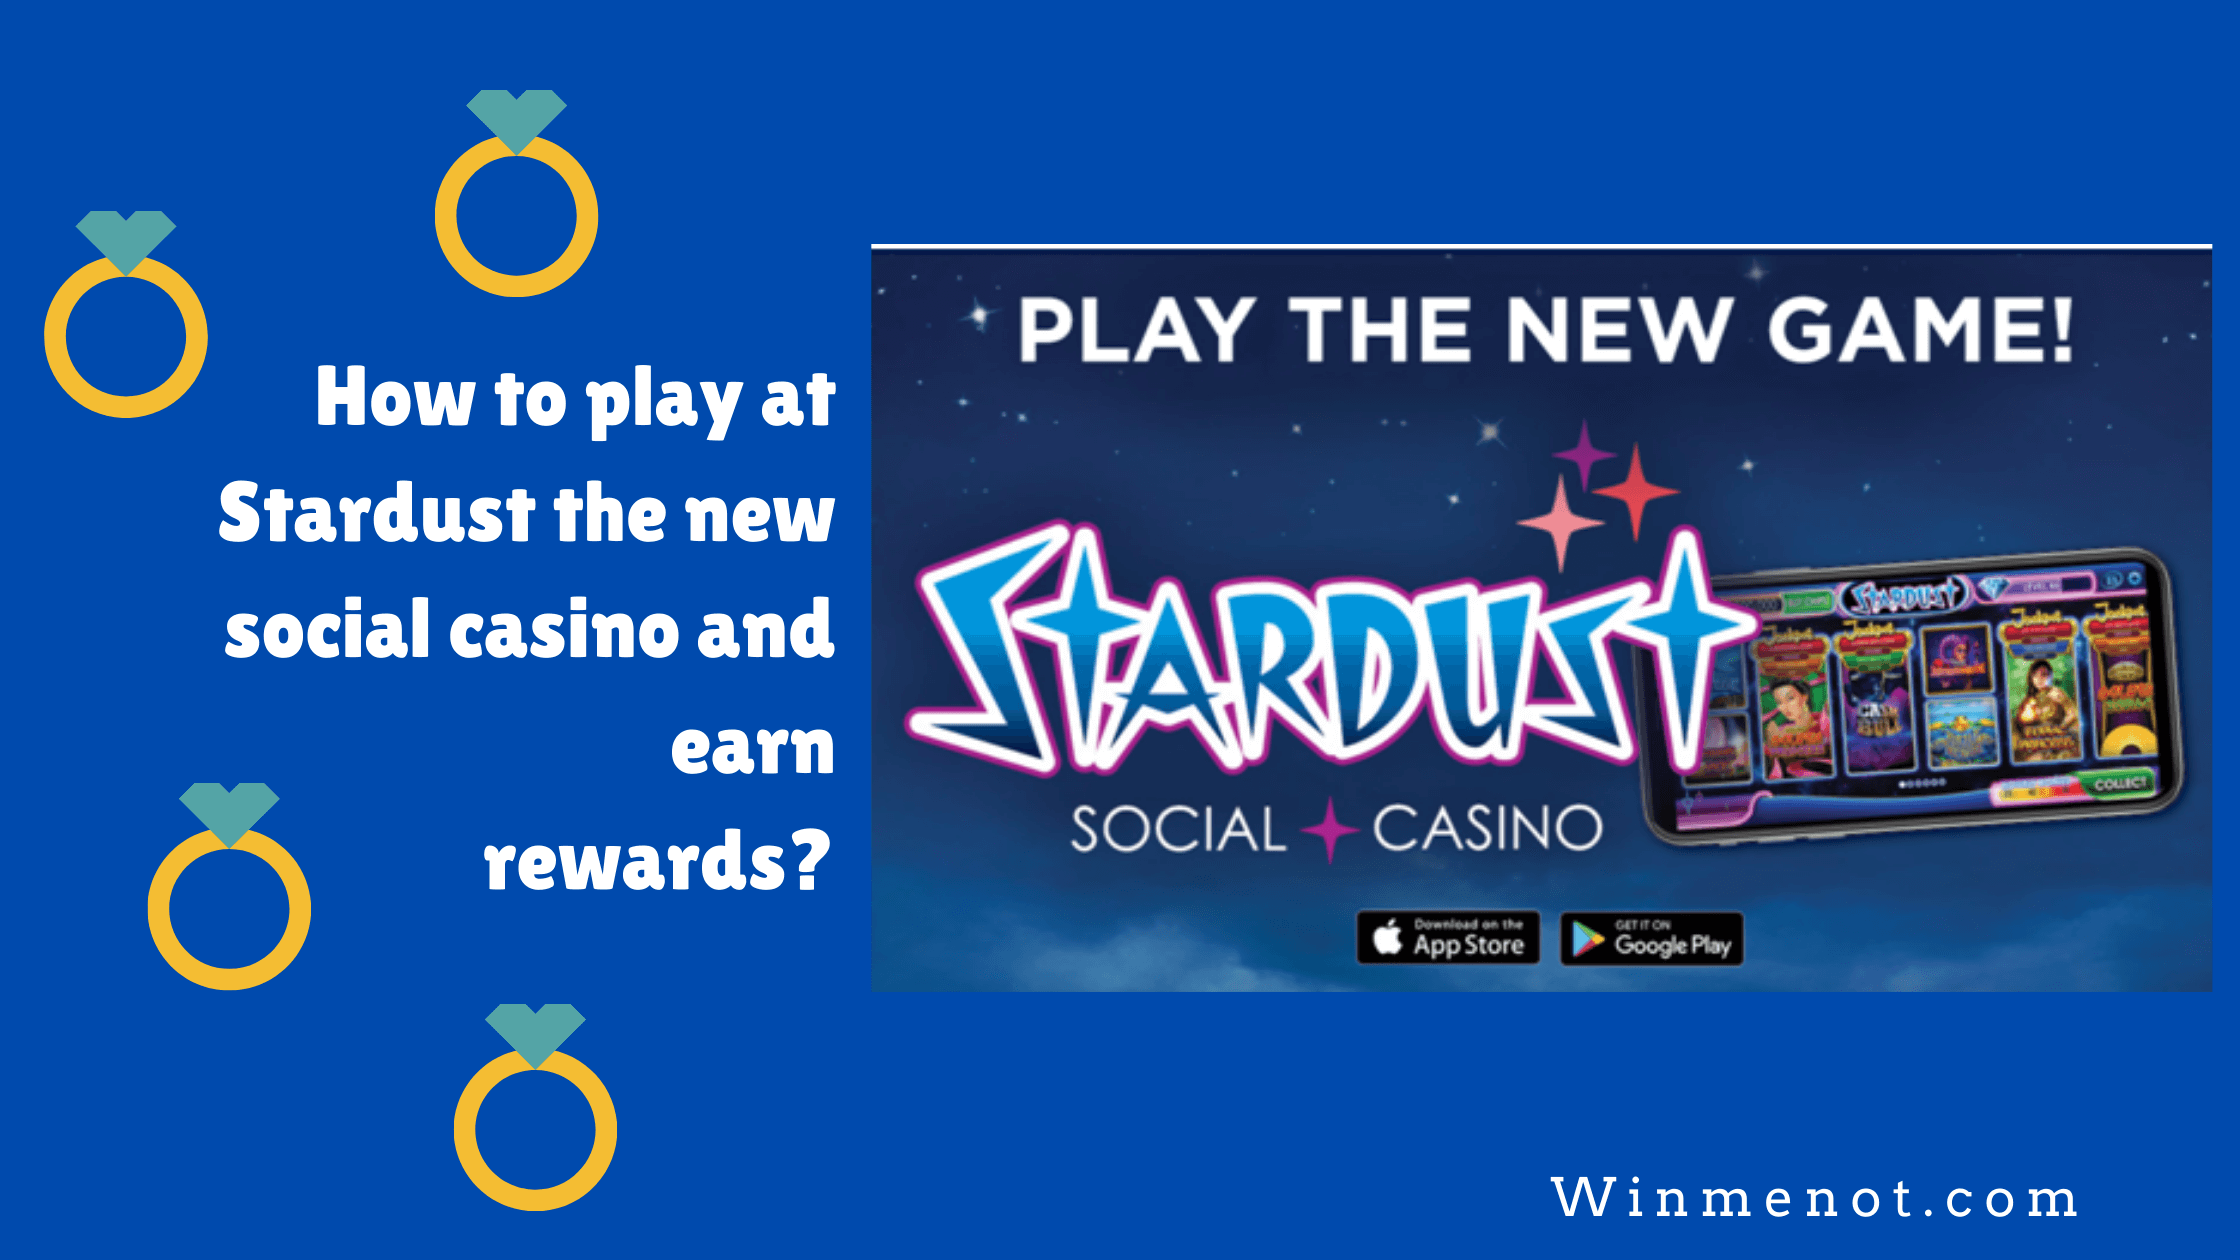 How to play at Stardust the new social casino and earn rewards_